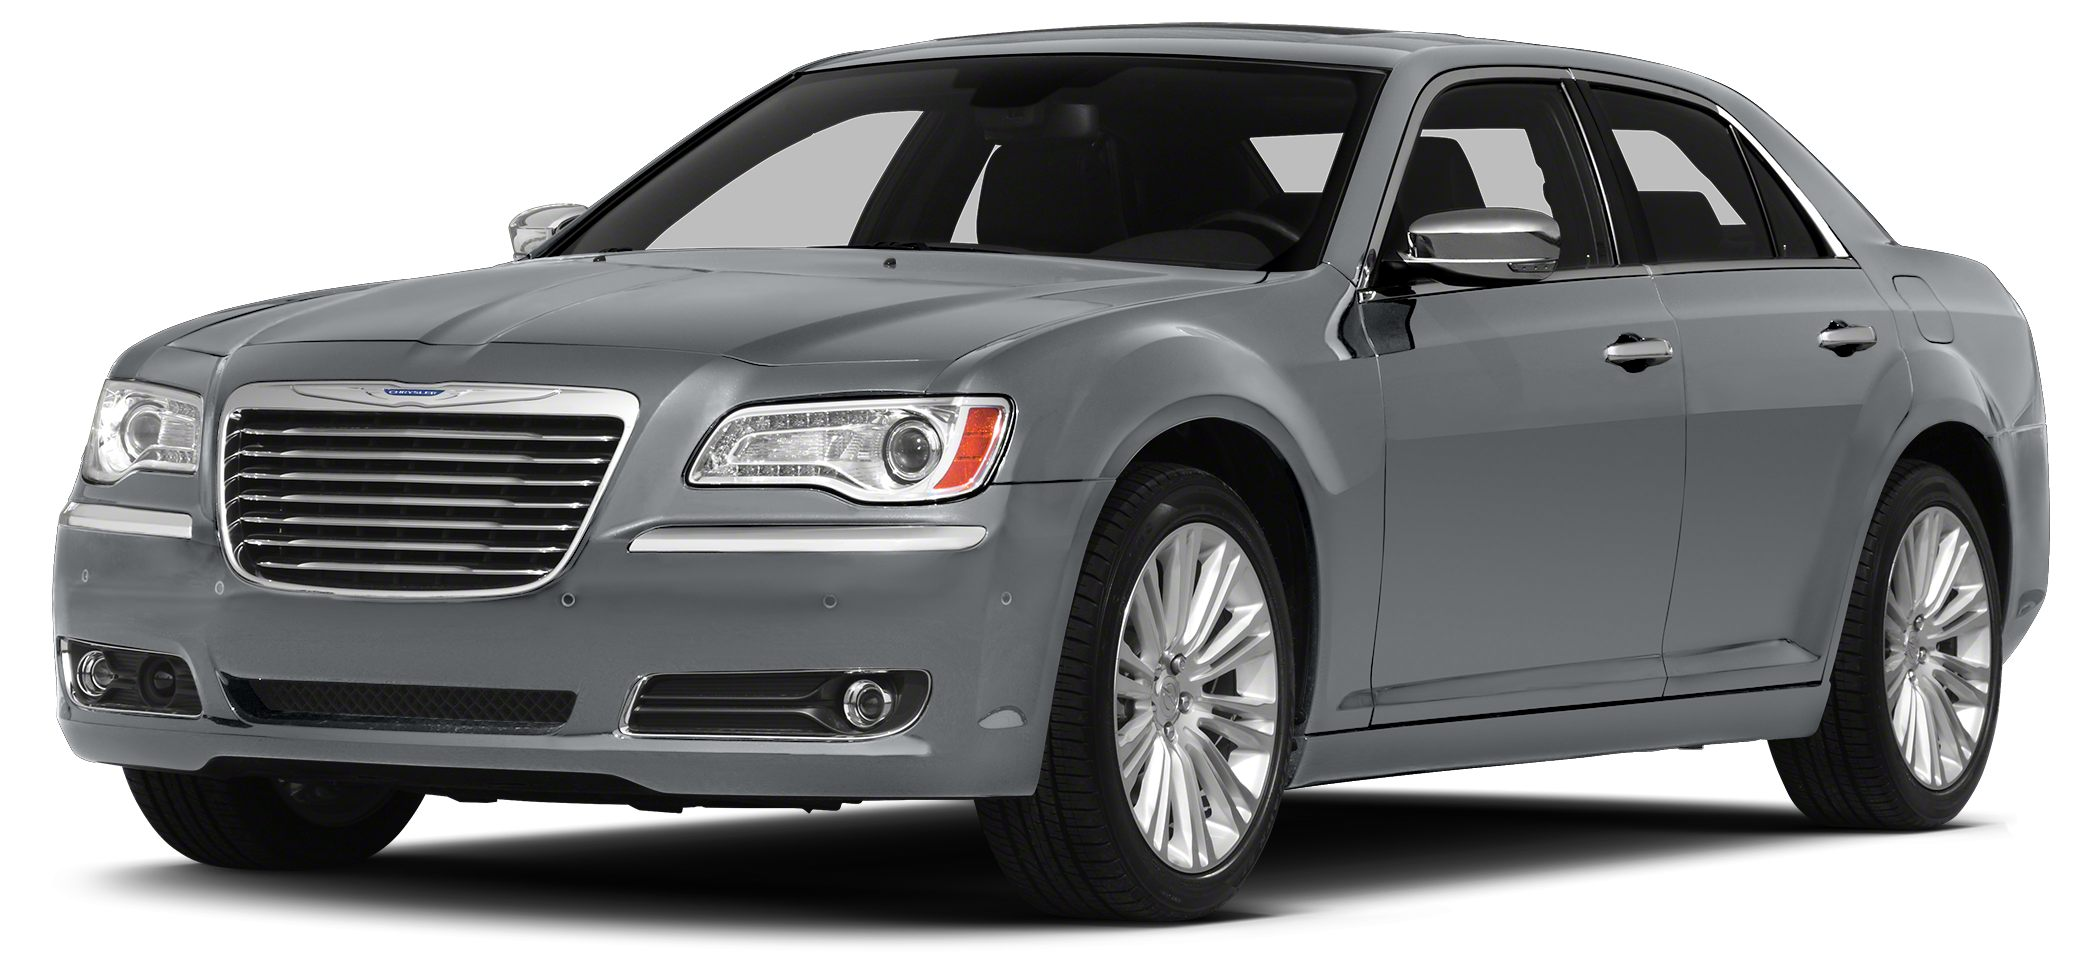 2014 Chrysler 300 Base This vehicle really shows it was cared for by the previous owner You shoul